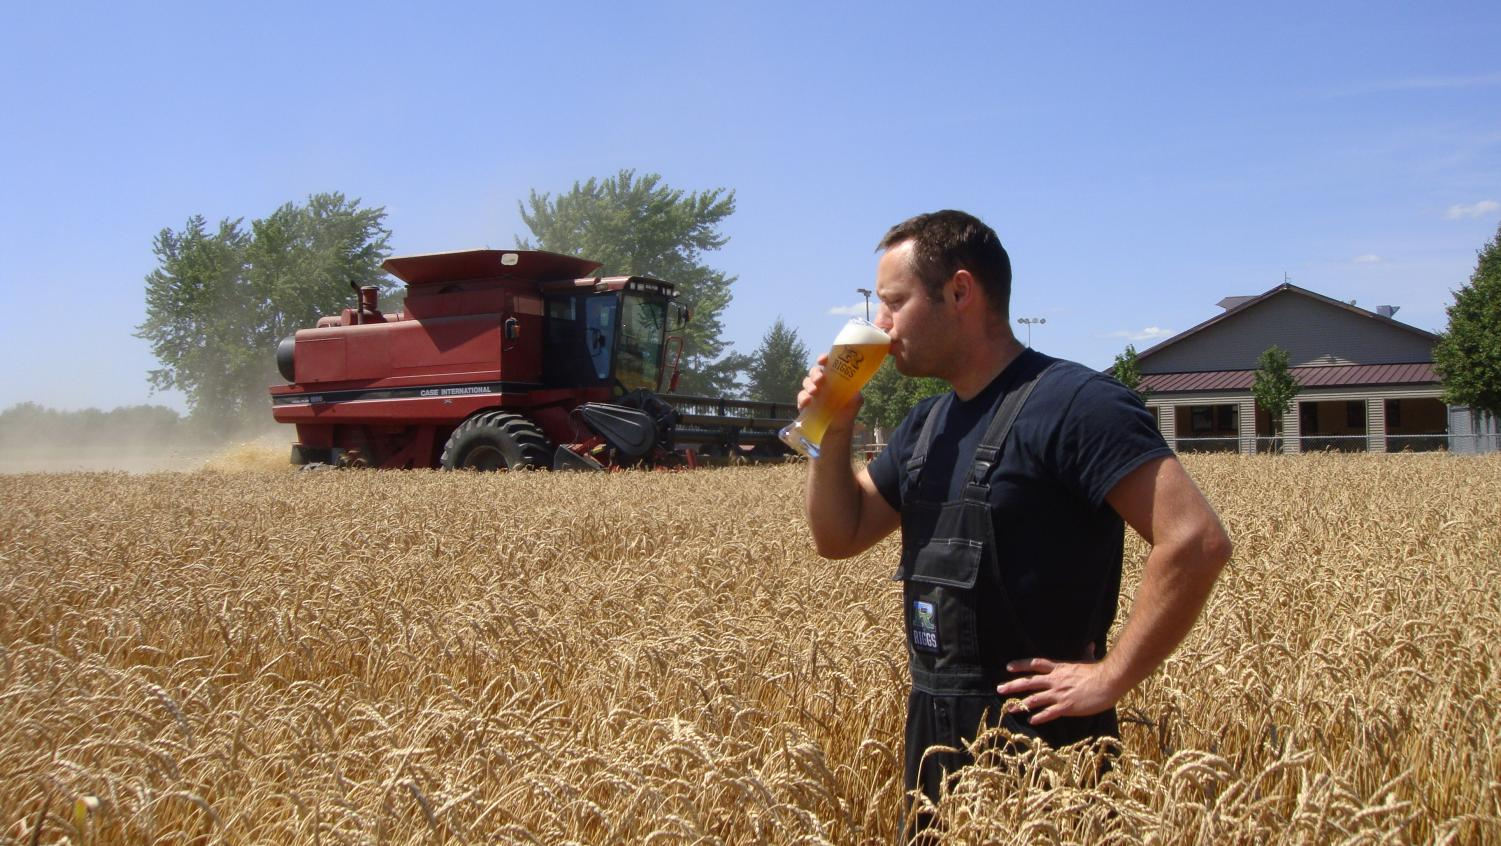 Riggs Beer Company Makes Final Steps To Become Solar Powered  The  Matt Riggs Holds An American Lager While Standing In A Field The Riggs  Beer Company